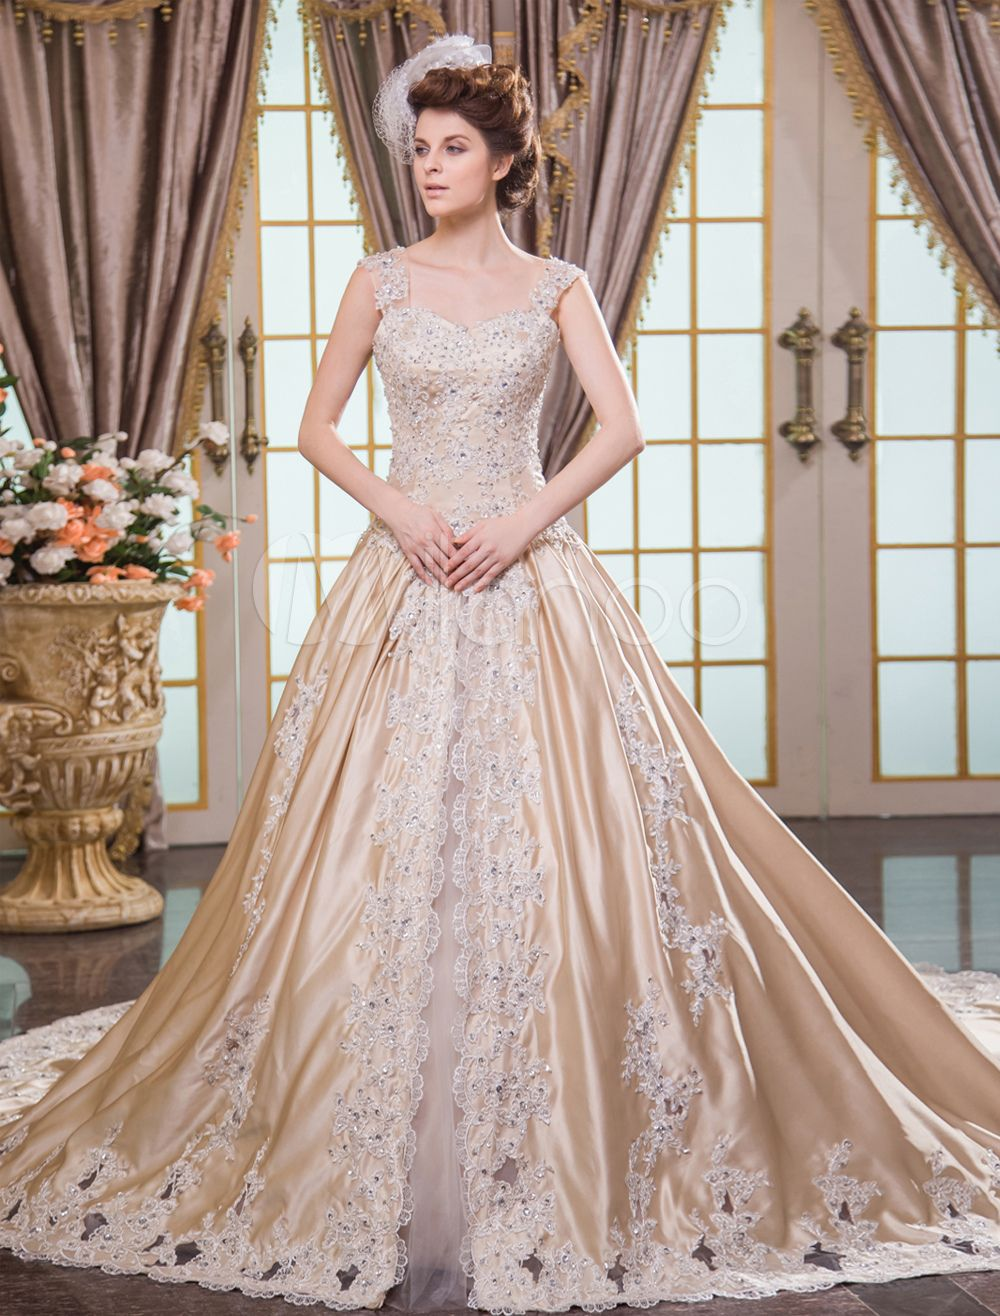 Champagne wedding dresses champagne wedding dresses pinterest champagne ball gown straps neck lace up bridal wedding dress ombrellifo Choice Image